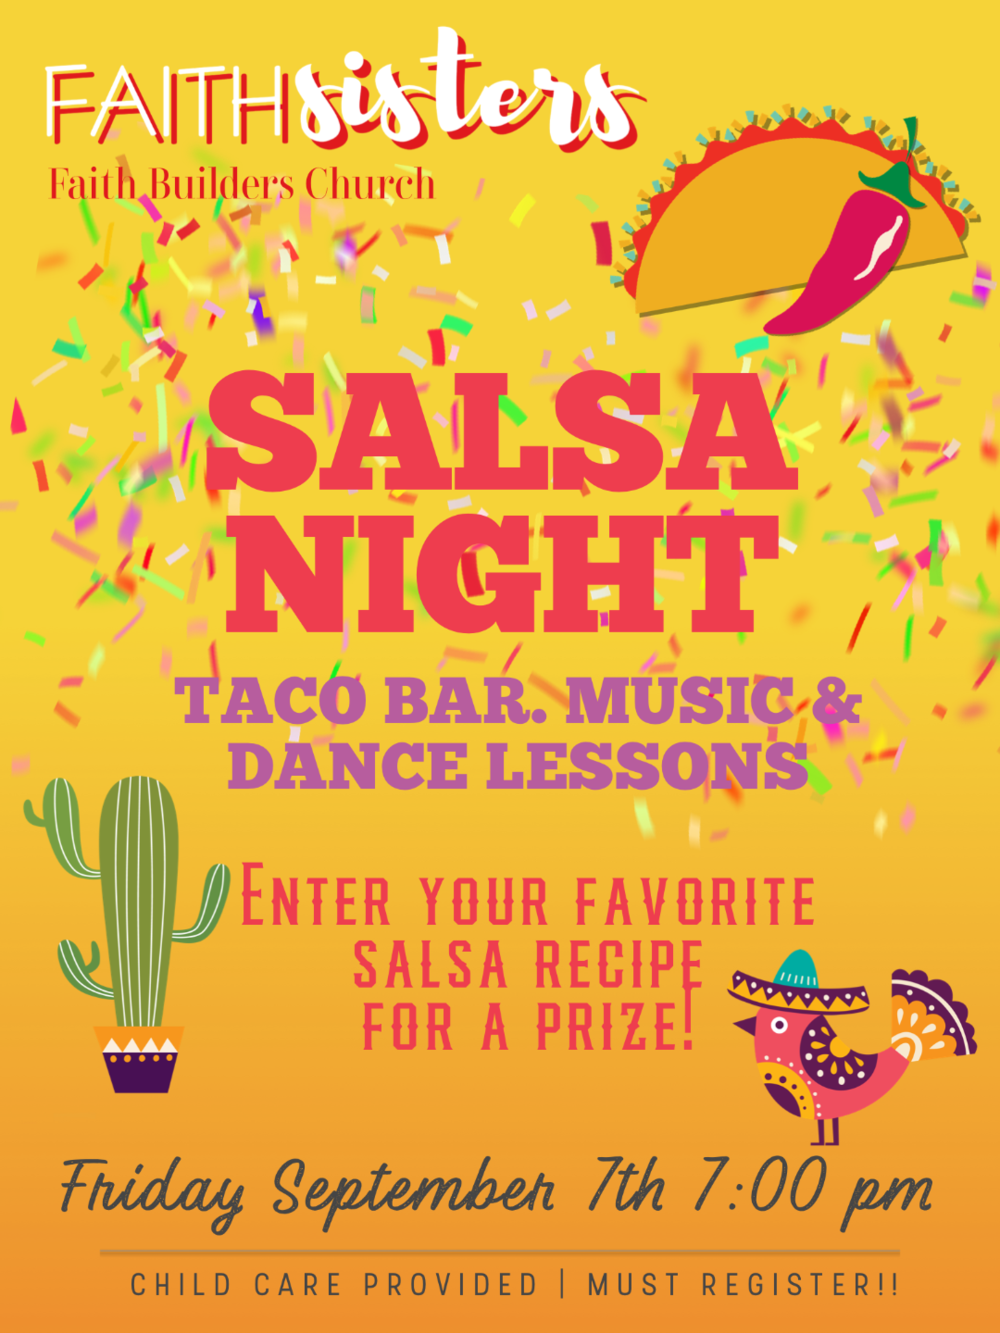 FaithSisters Salsa Night - Friday, September 7th 7:00 pm